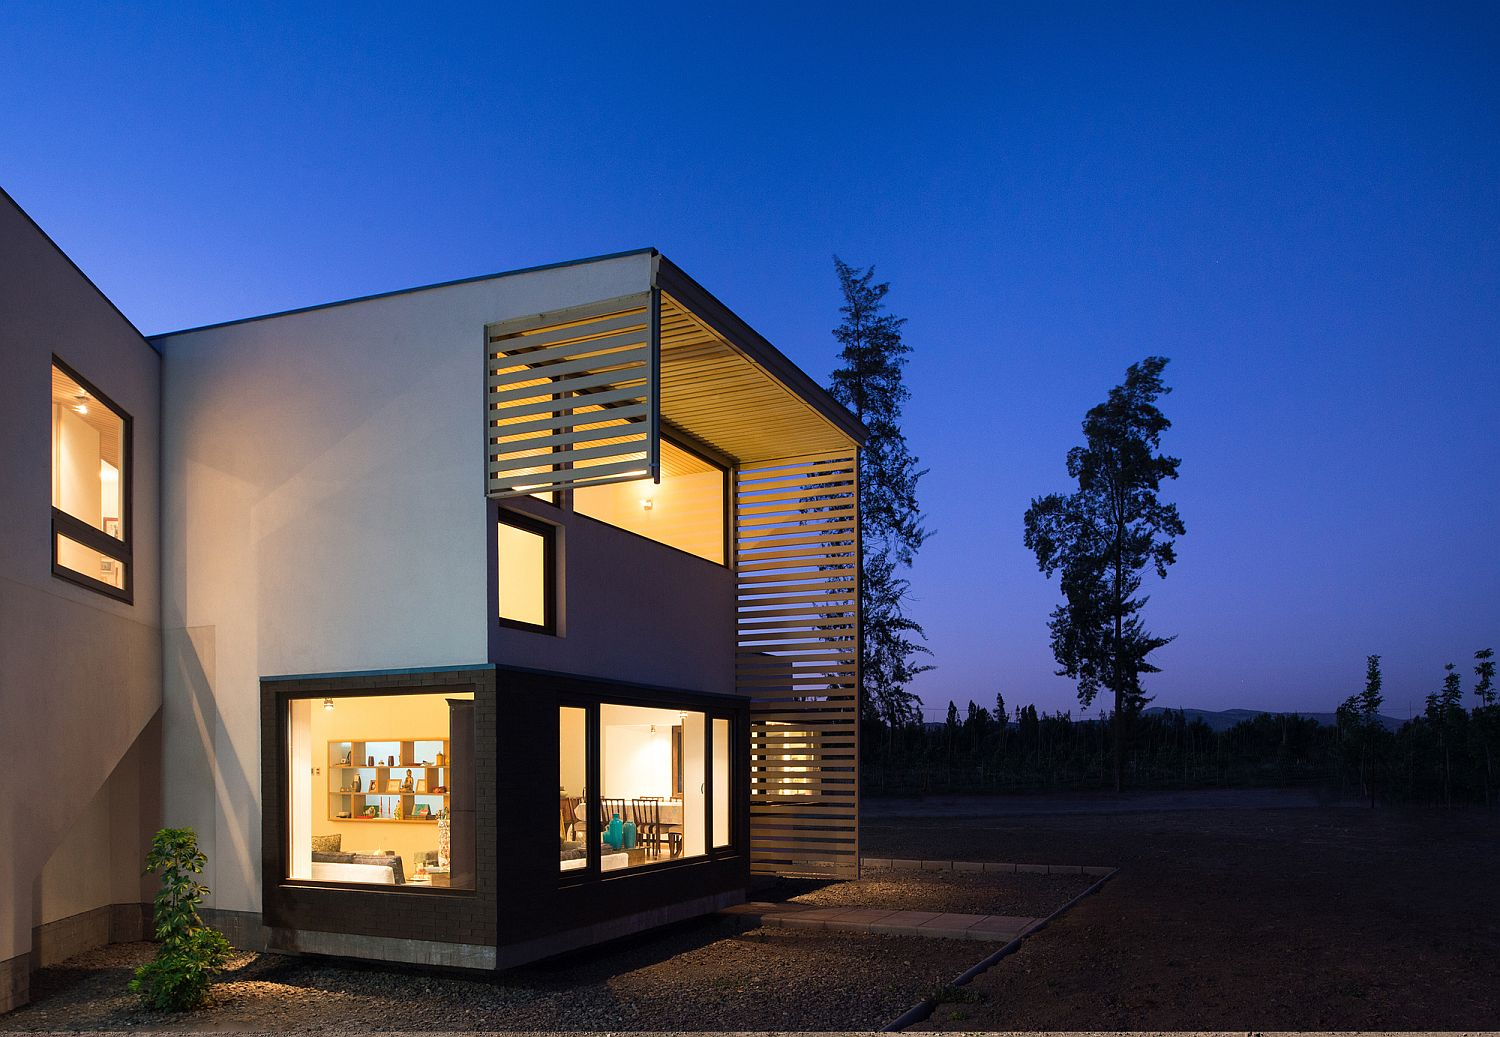 Extended roof offers protection from scorching heat and direct sunlight